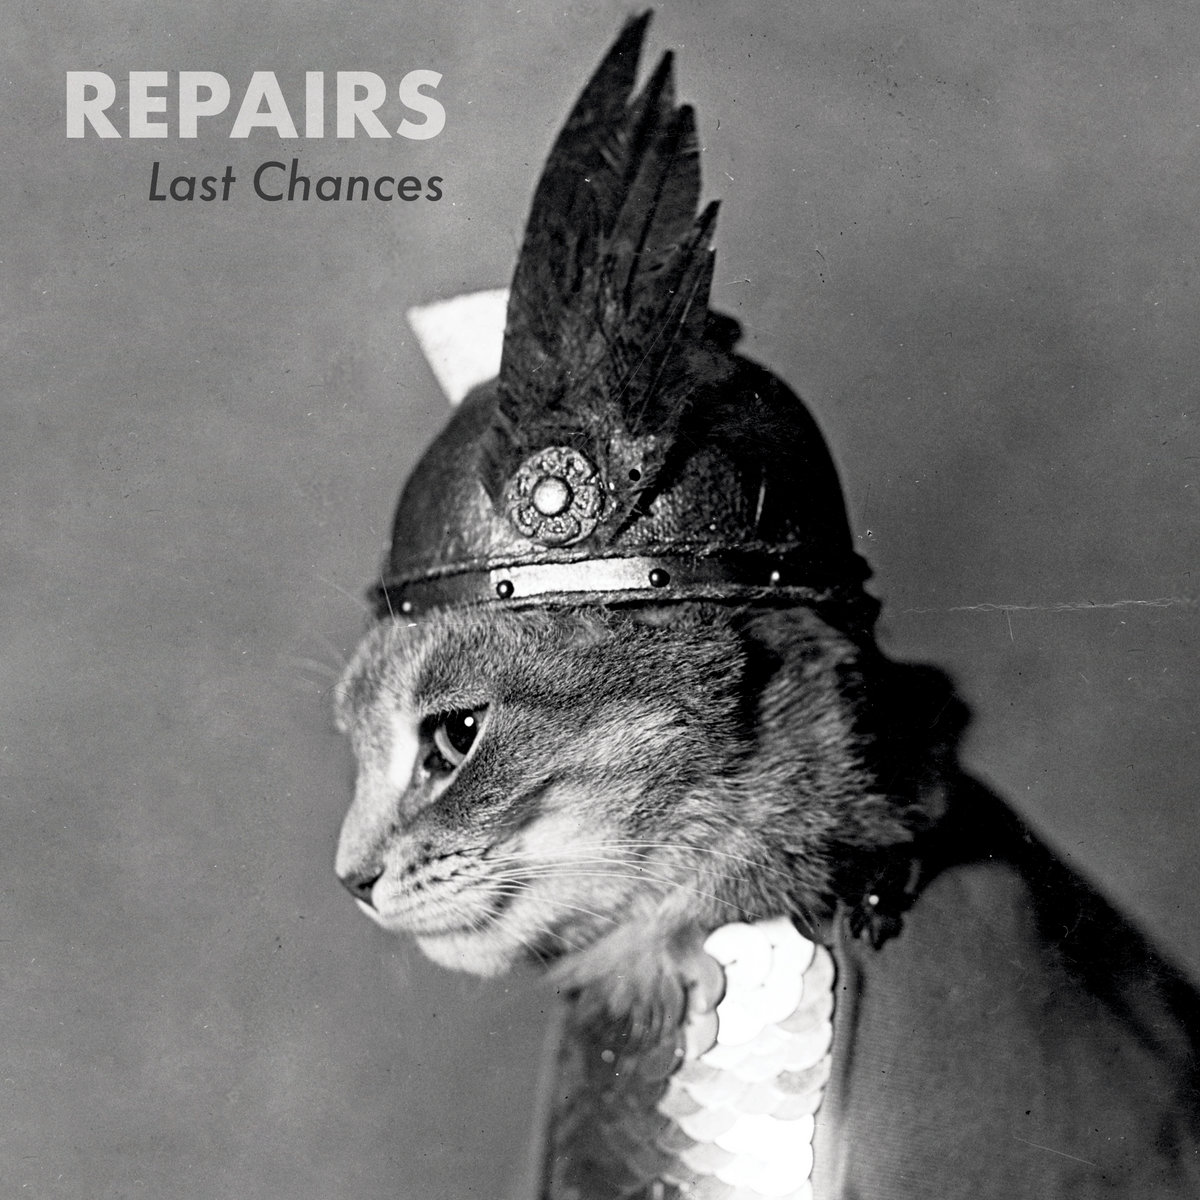 Brèves – Repairs, Two Door Cinema Club, Hurts